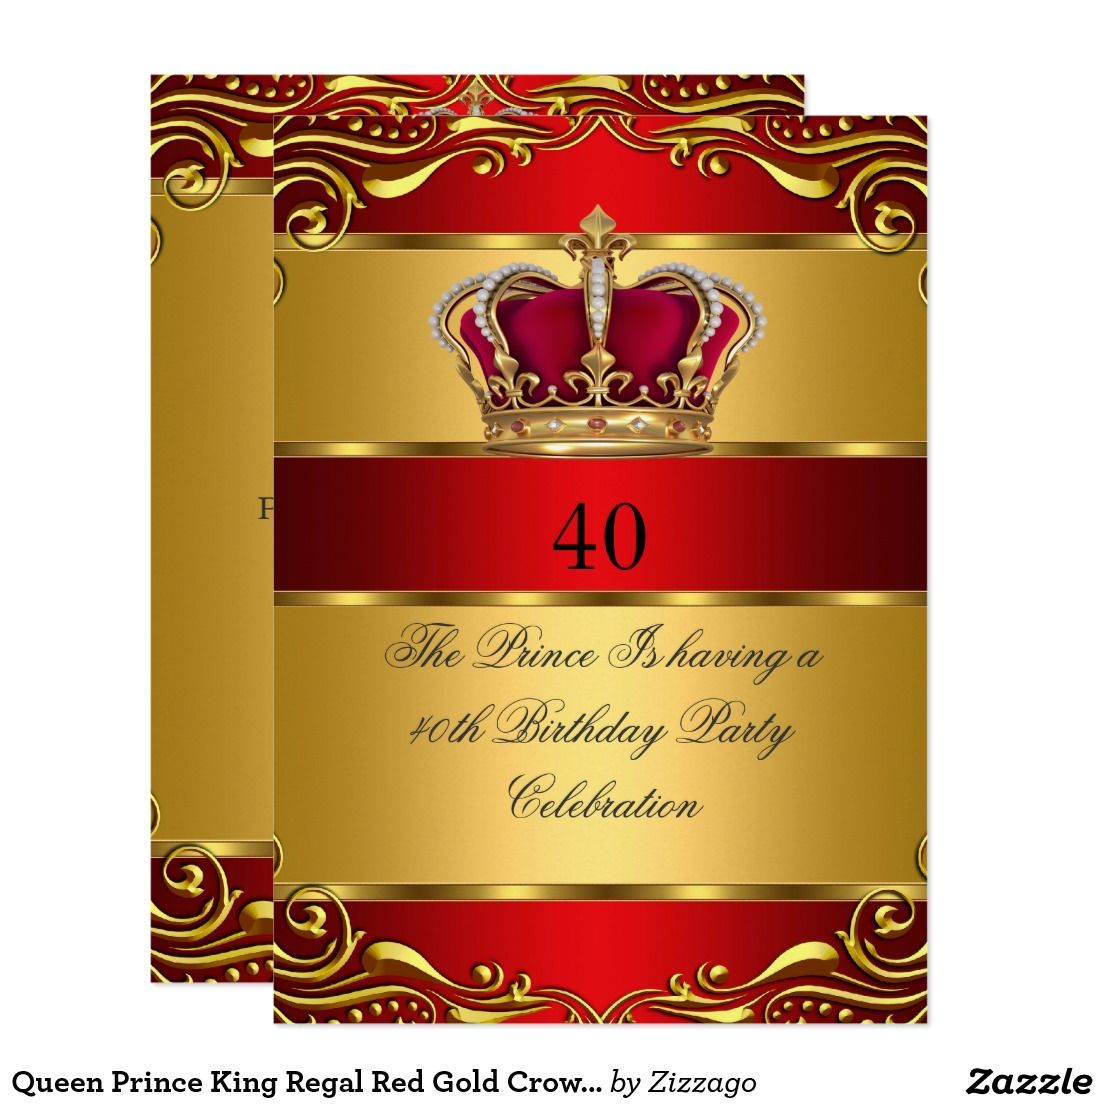 Queen Prince King Regal Red Gold Crown Birthday Card | Sold Products ...